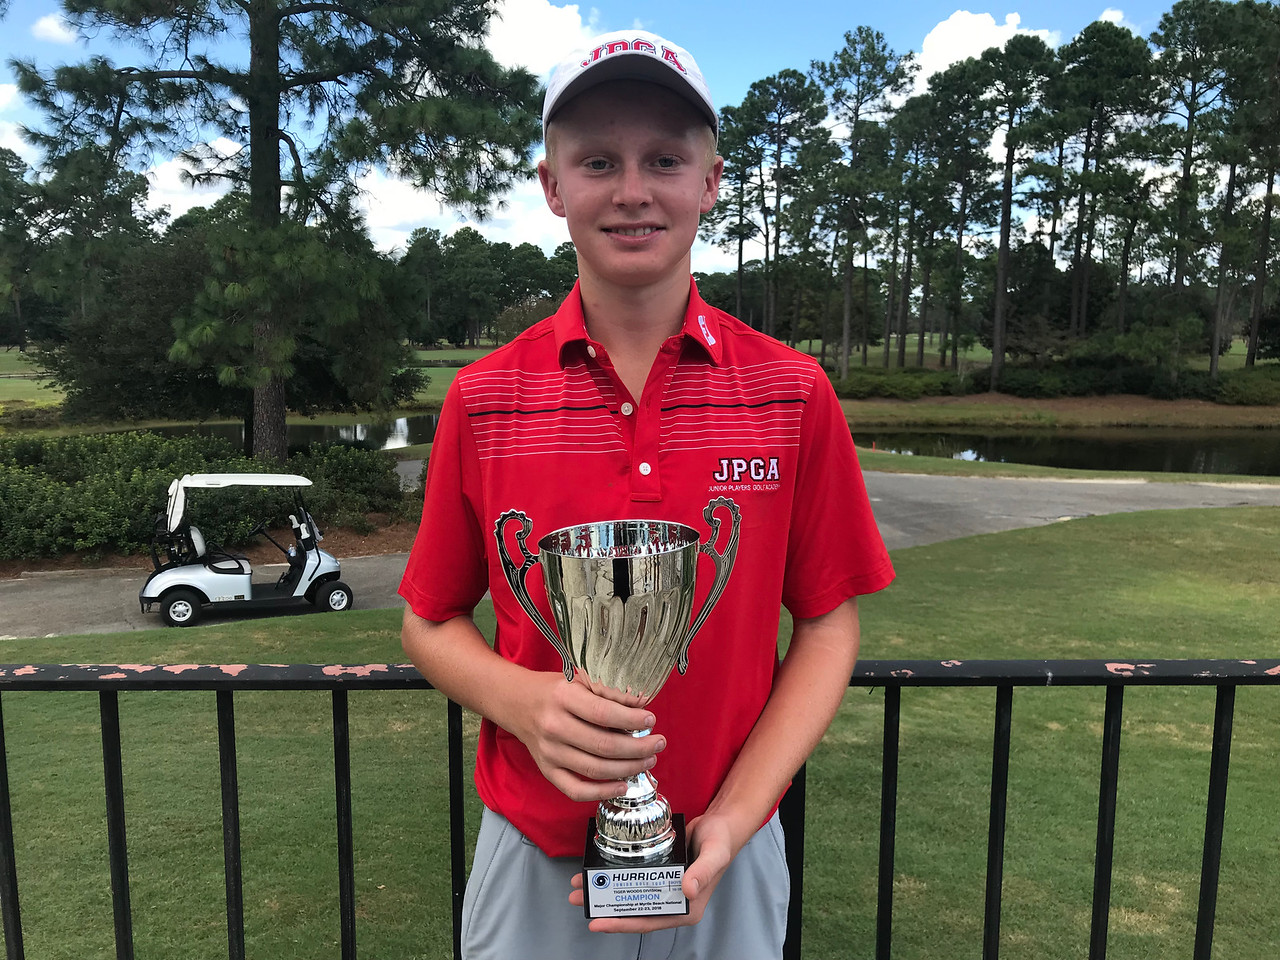 Major Championship at Myrtle Beach National